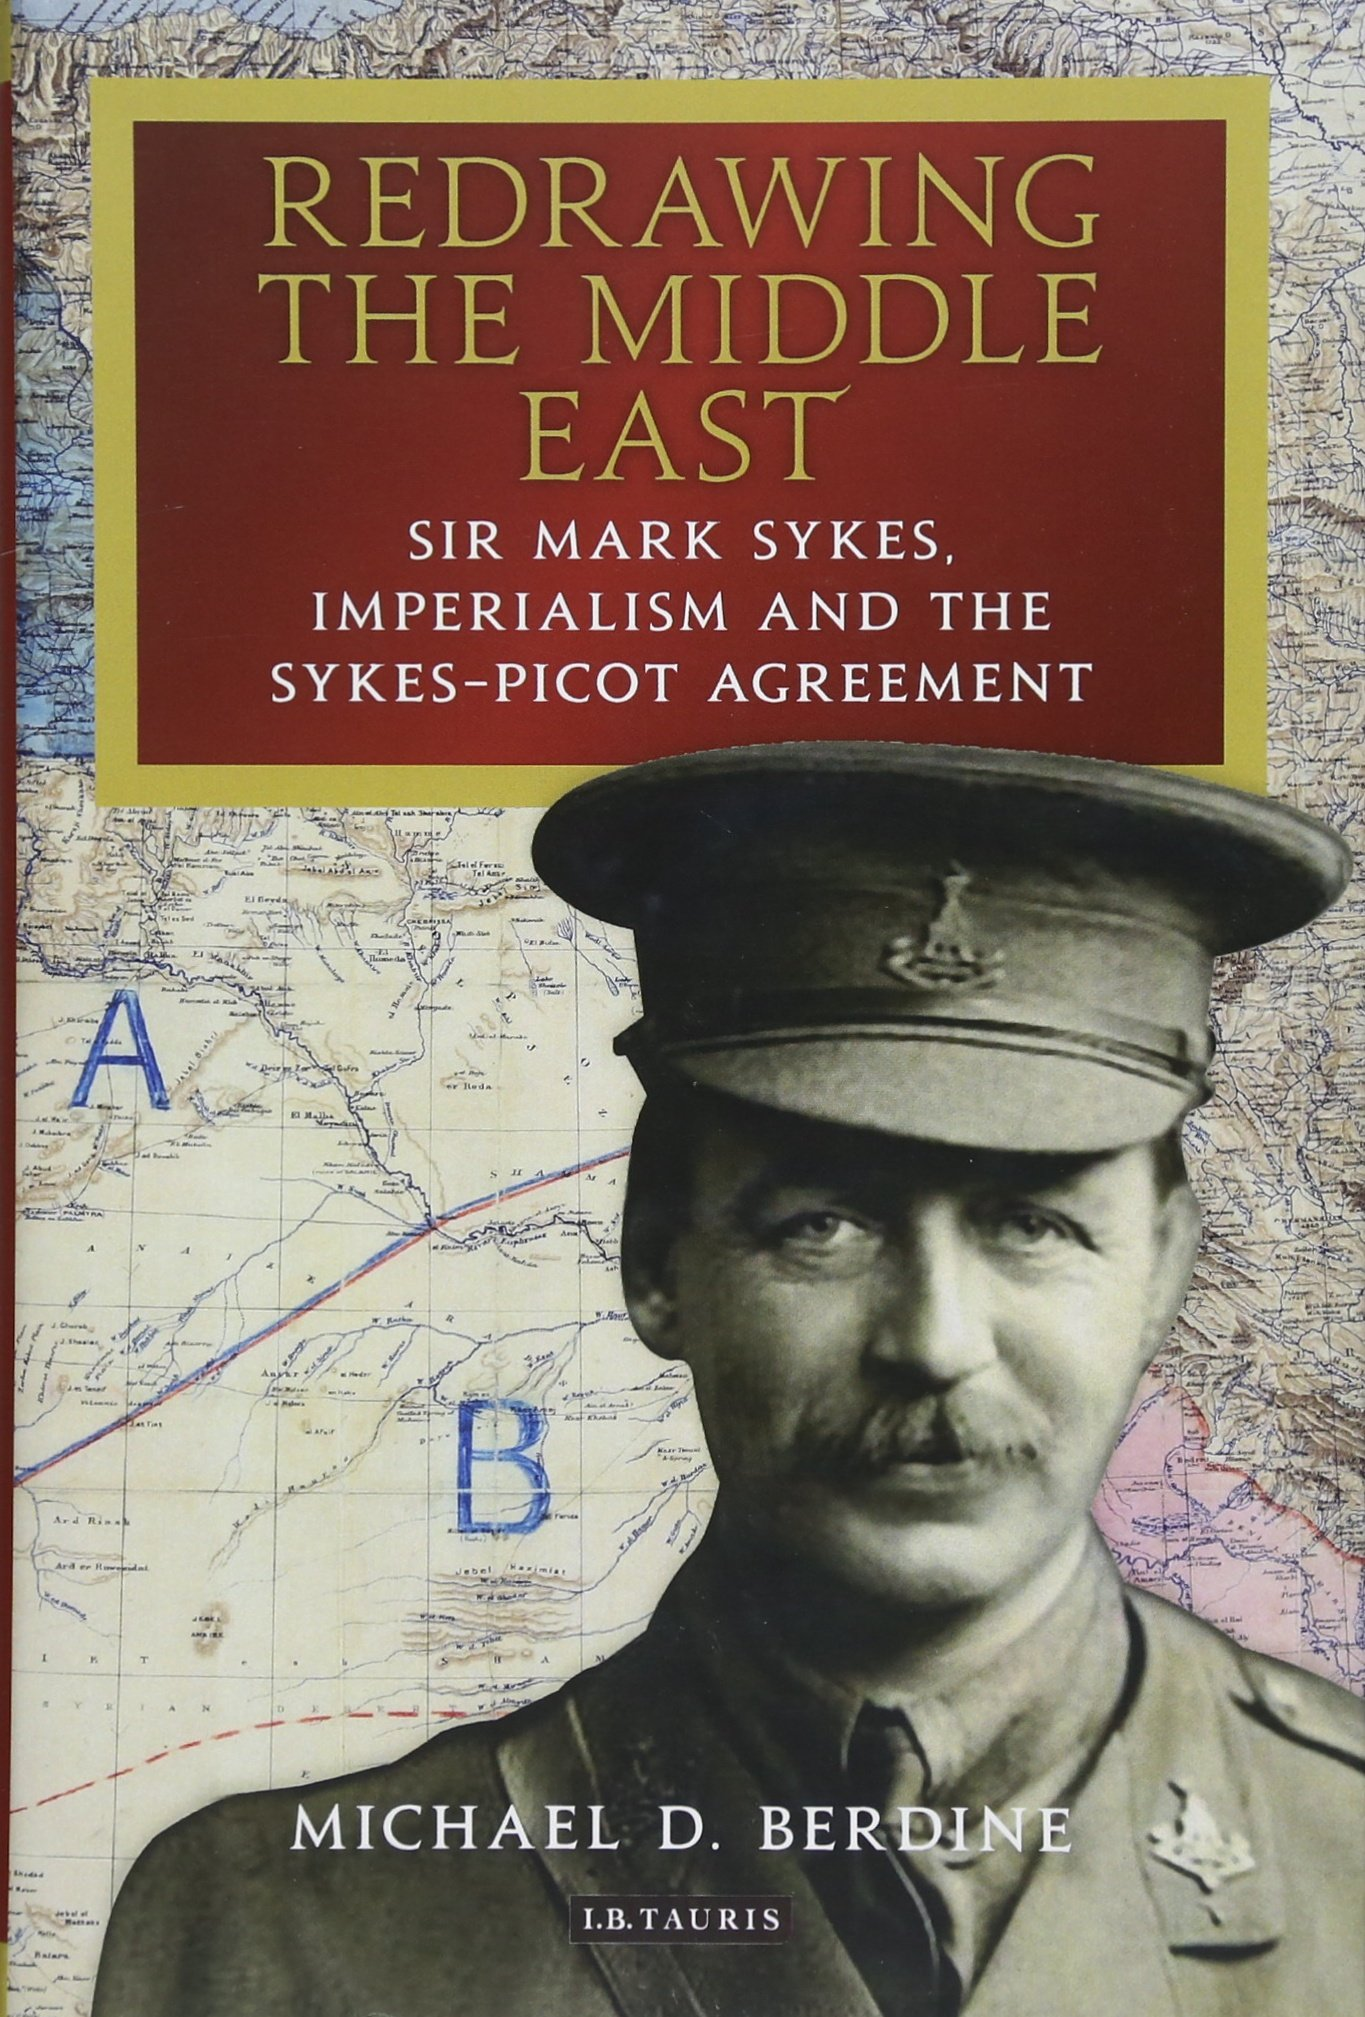 Redrawing the Middle East: Sir Mark Sykes, Imperialism and the Sykes-Picot Agreement (Library of Middle East History) PDF